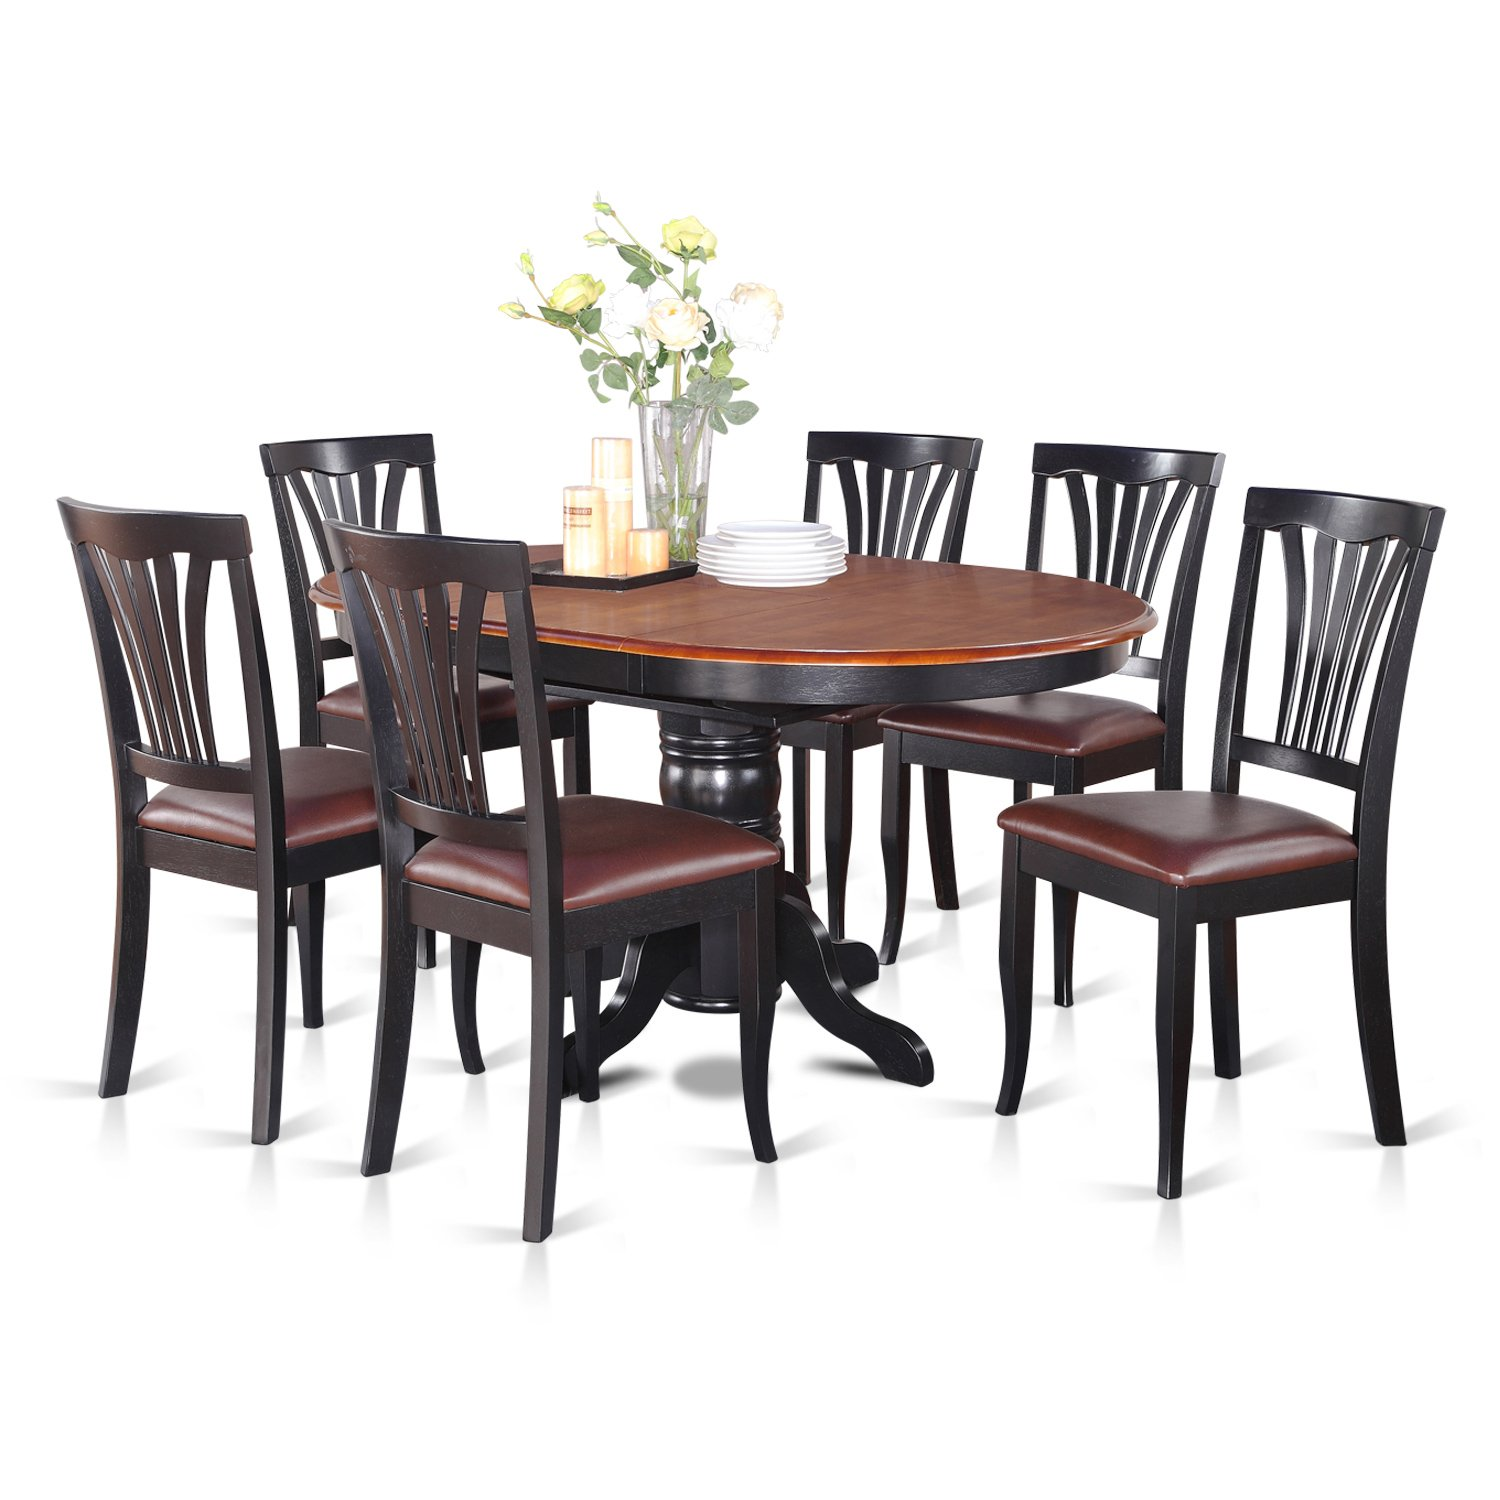 East West Furniture Dinette Table Set 6 Great Wooden Dining Chairs A Beautiful Round Dining Table Faux Leather Seat Cherry And Black Finnish Butterfly Leaf Round Wooden Dining Table Buy Online In